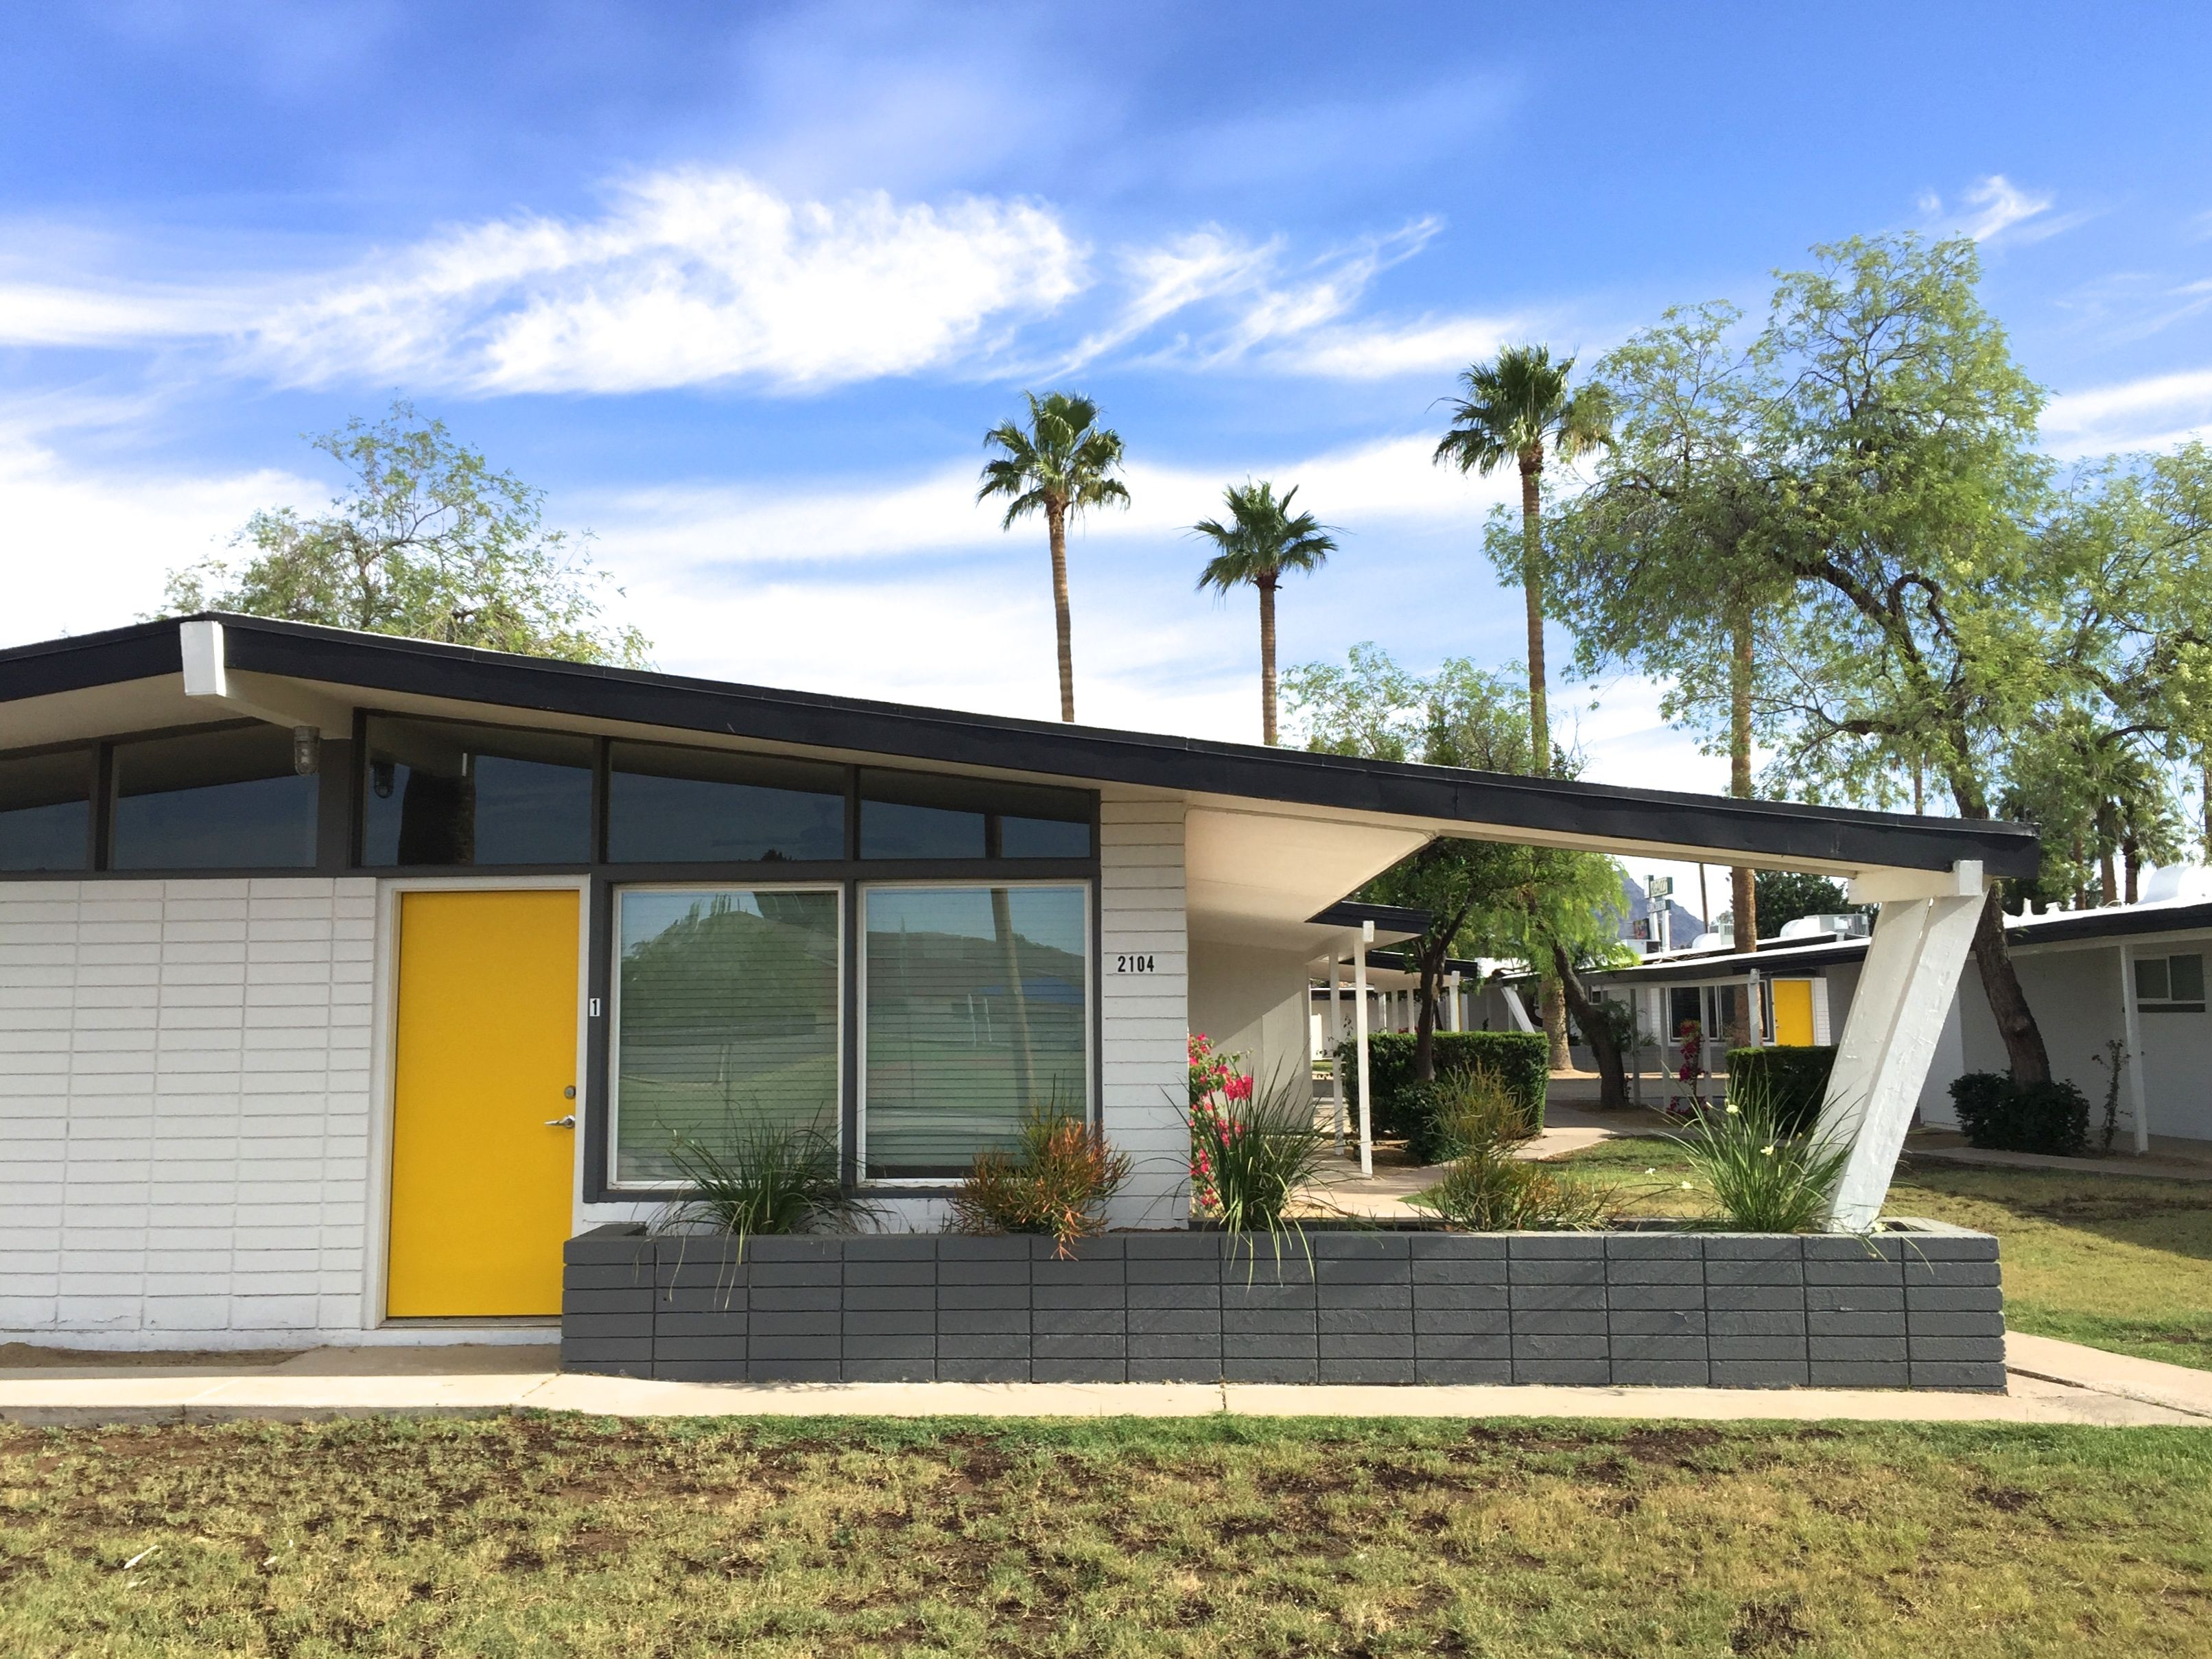 Mode Fairmount Is A Midcentury Modern Single Story Apartment Community Located In Phoenix S Sought Waterfront Homes For Sale Condos For Rent Waterfront Homes